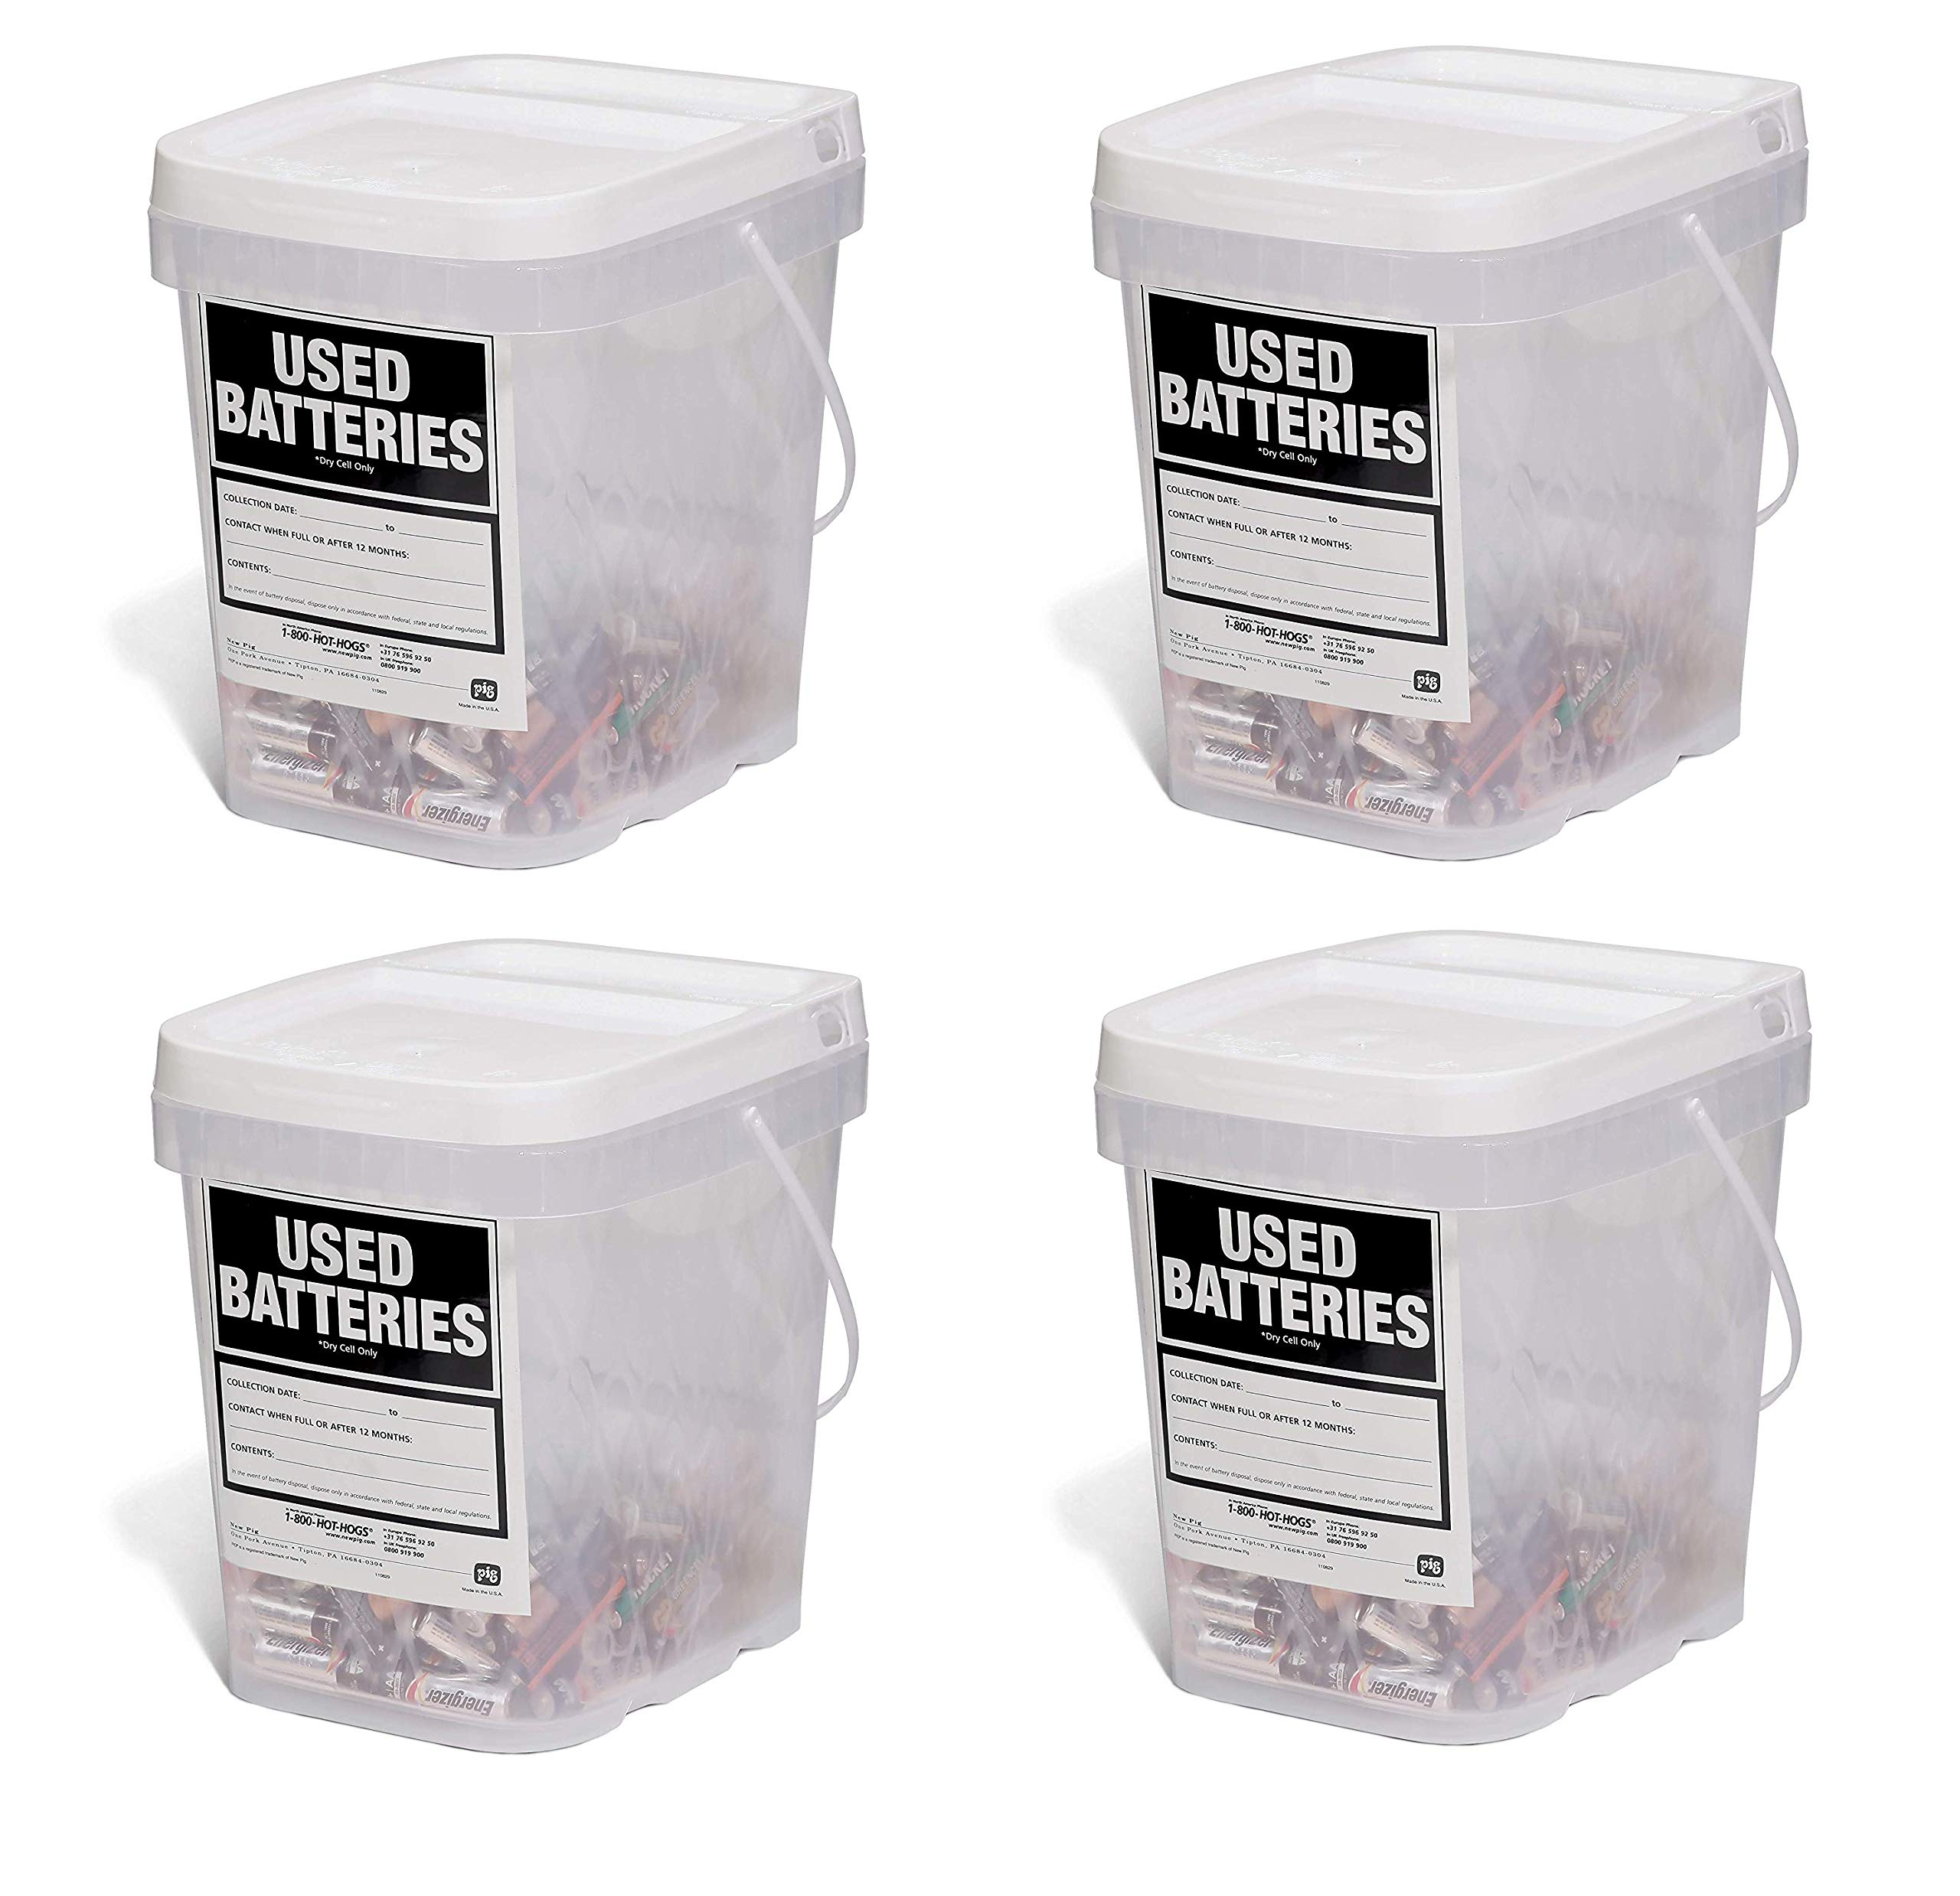 New Pig Used Battery Container, Clear/White (Pack of 4)